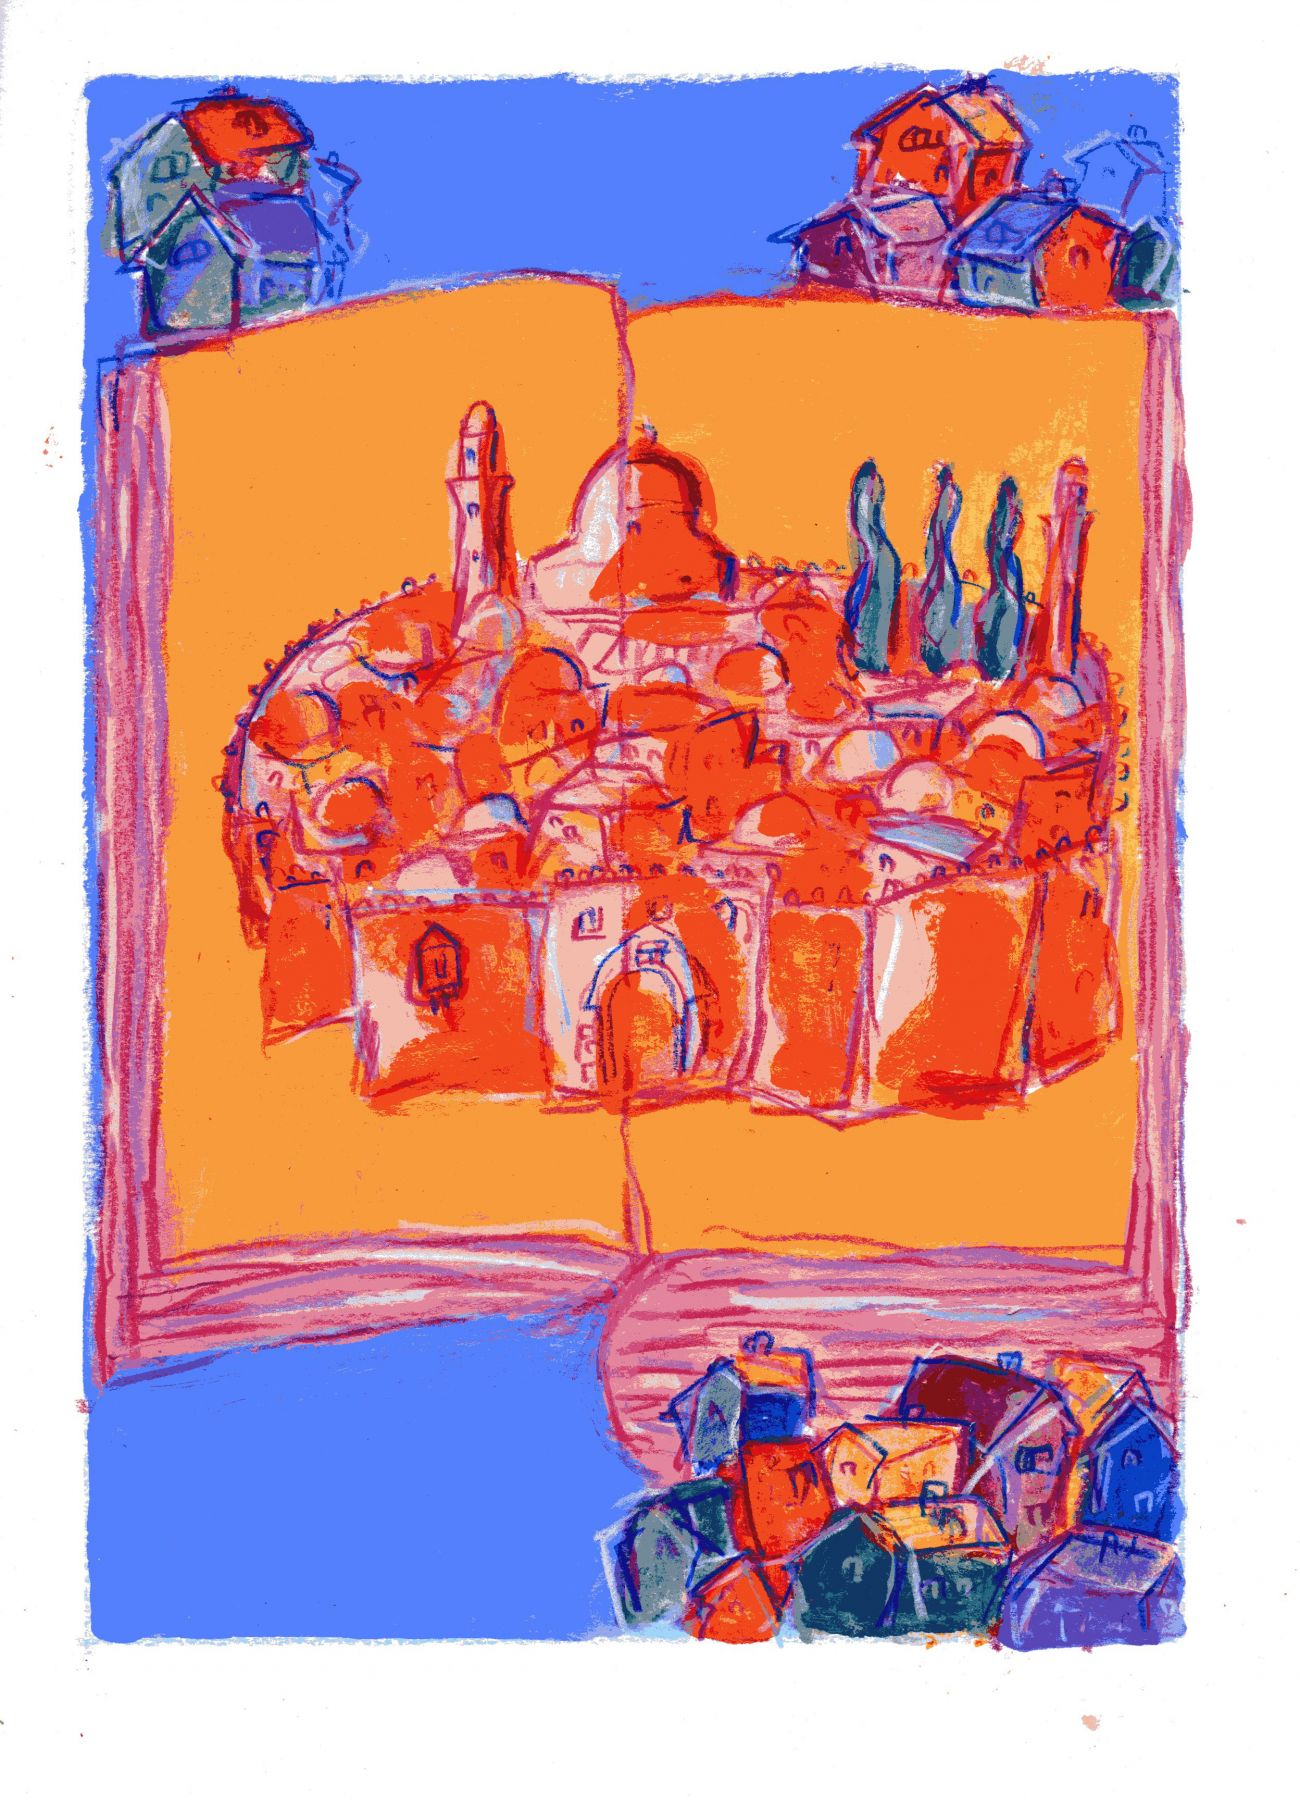 mark podwal, Next Year in Jerusalem, 2011, acrylic, gouache and colored pencil on paper, 16 x 12 inches